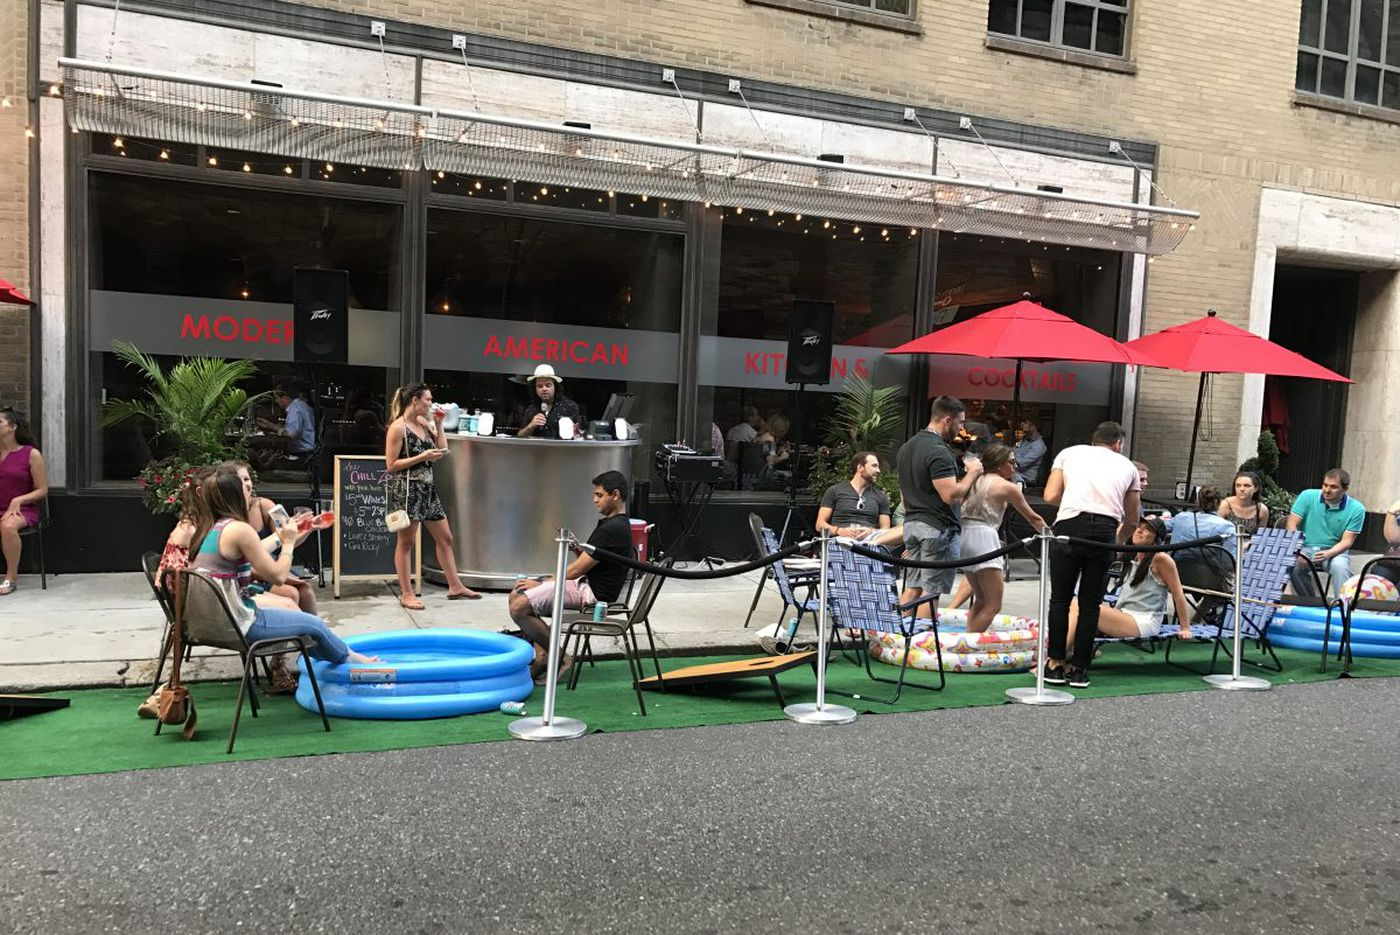 Has Philly hit peak pop-up? Vacant lots, valet parking lanes - and, now, The Median